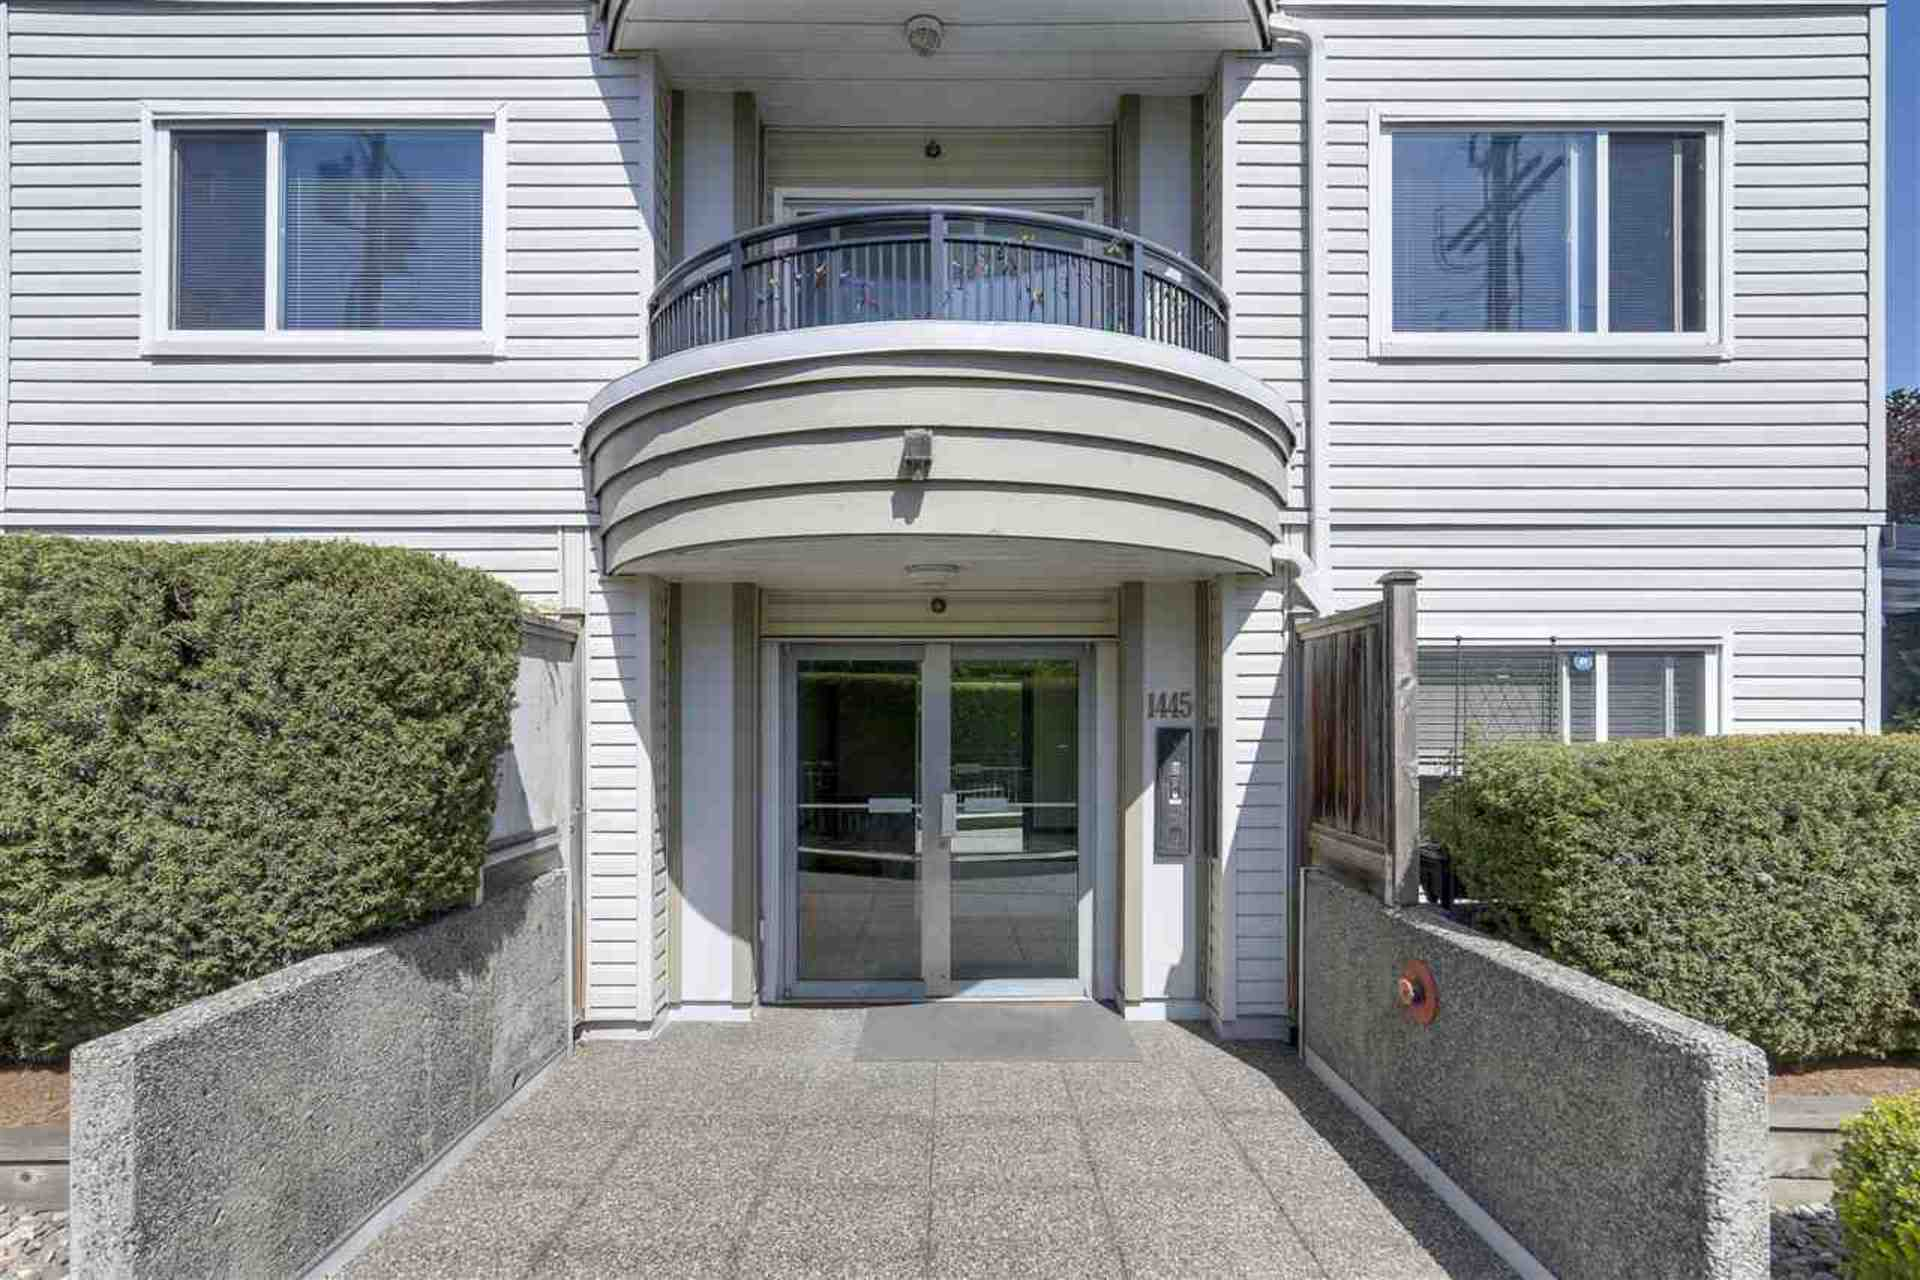 1445-w-70th-avenue-marpole-vancouver-west-02 at 301 - 1445 W 70th Avenue, Marpole, Vancouver West